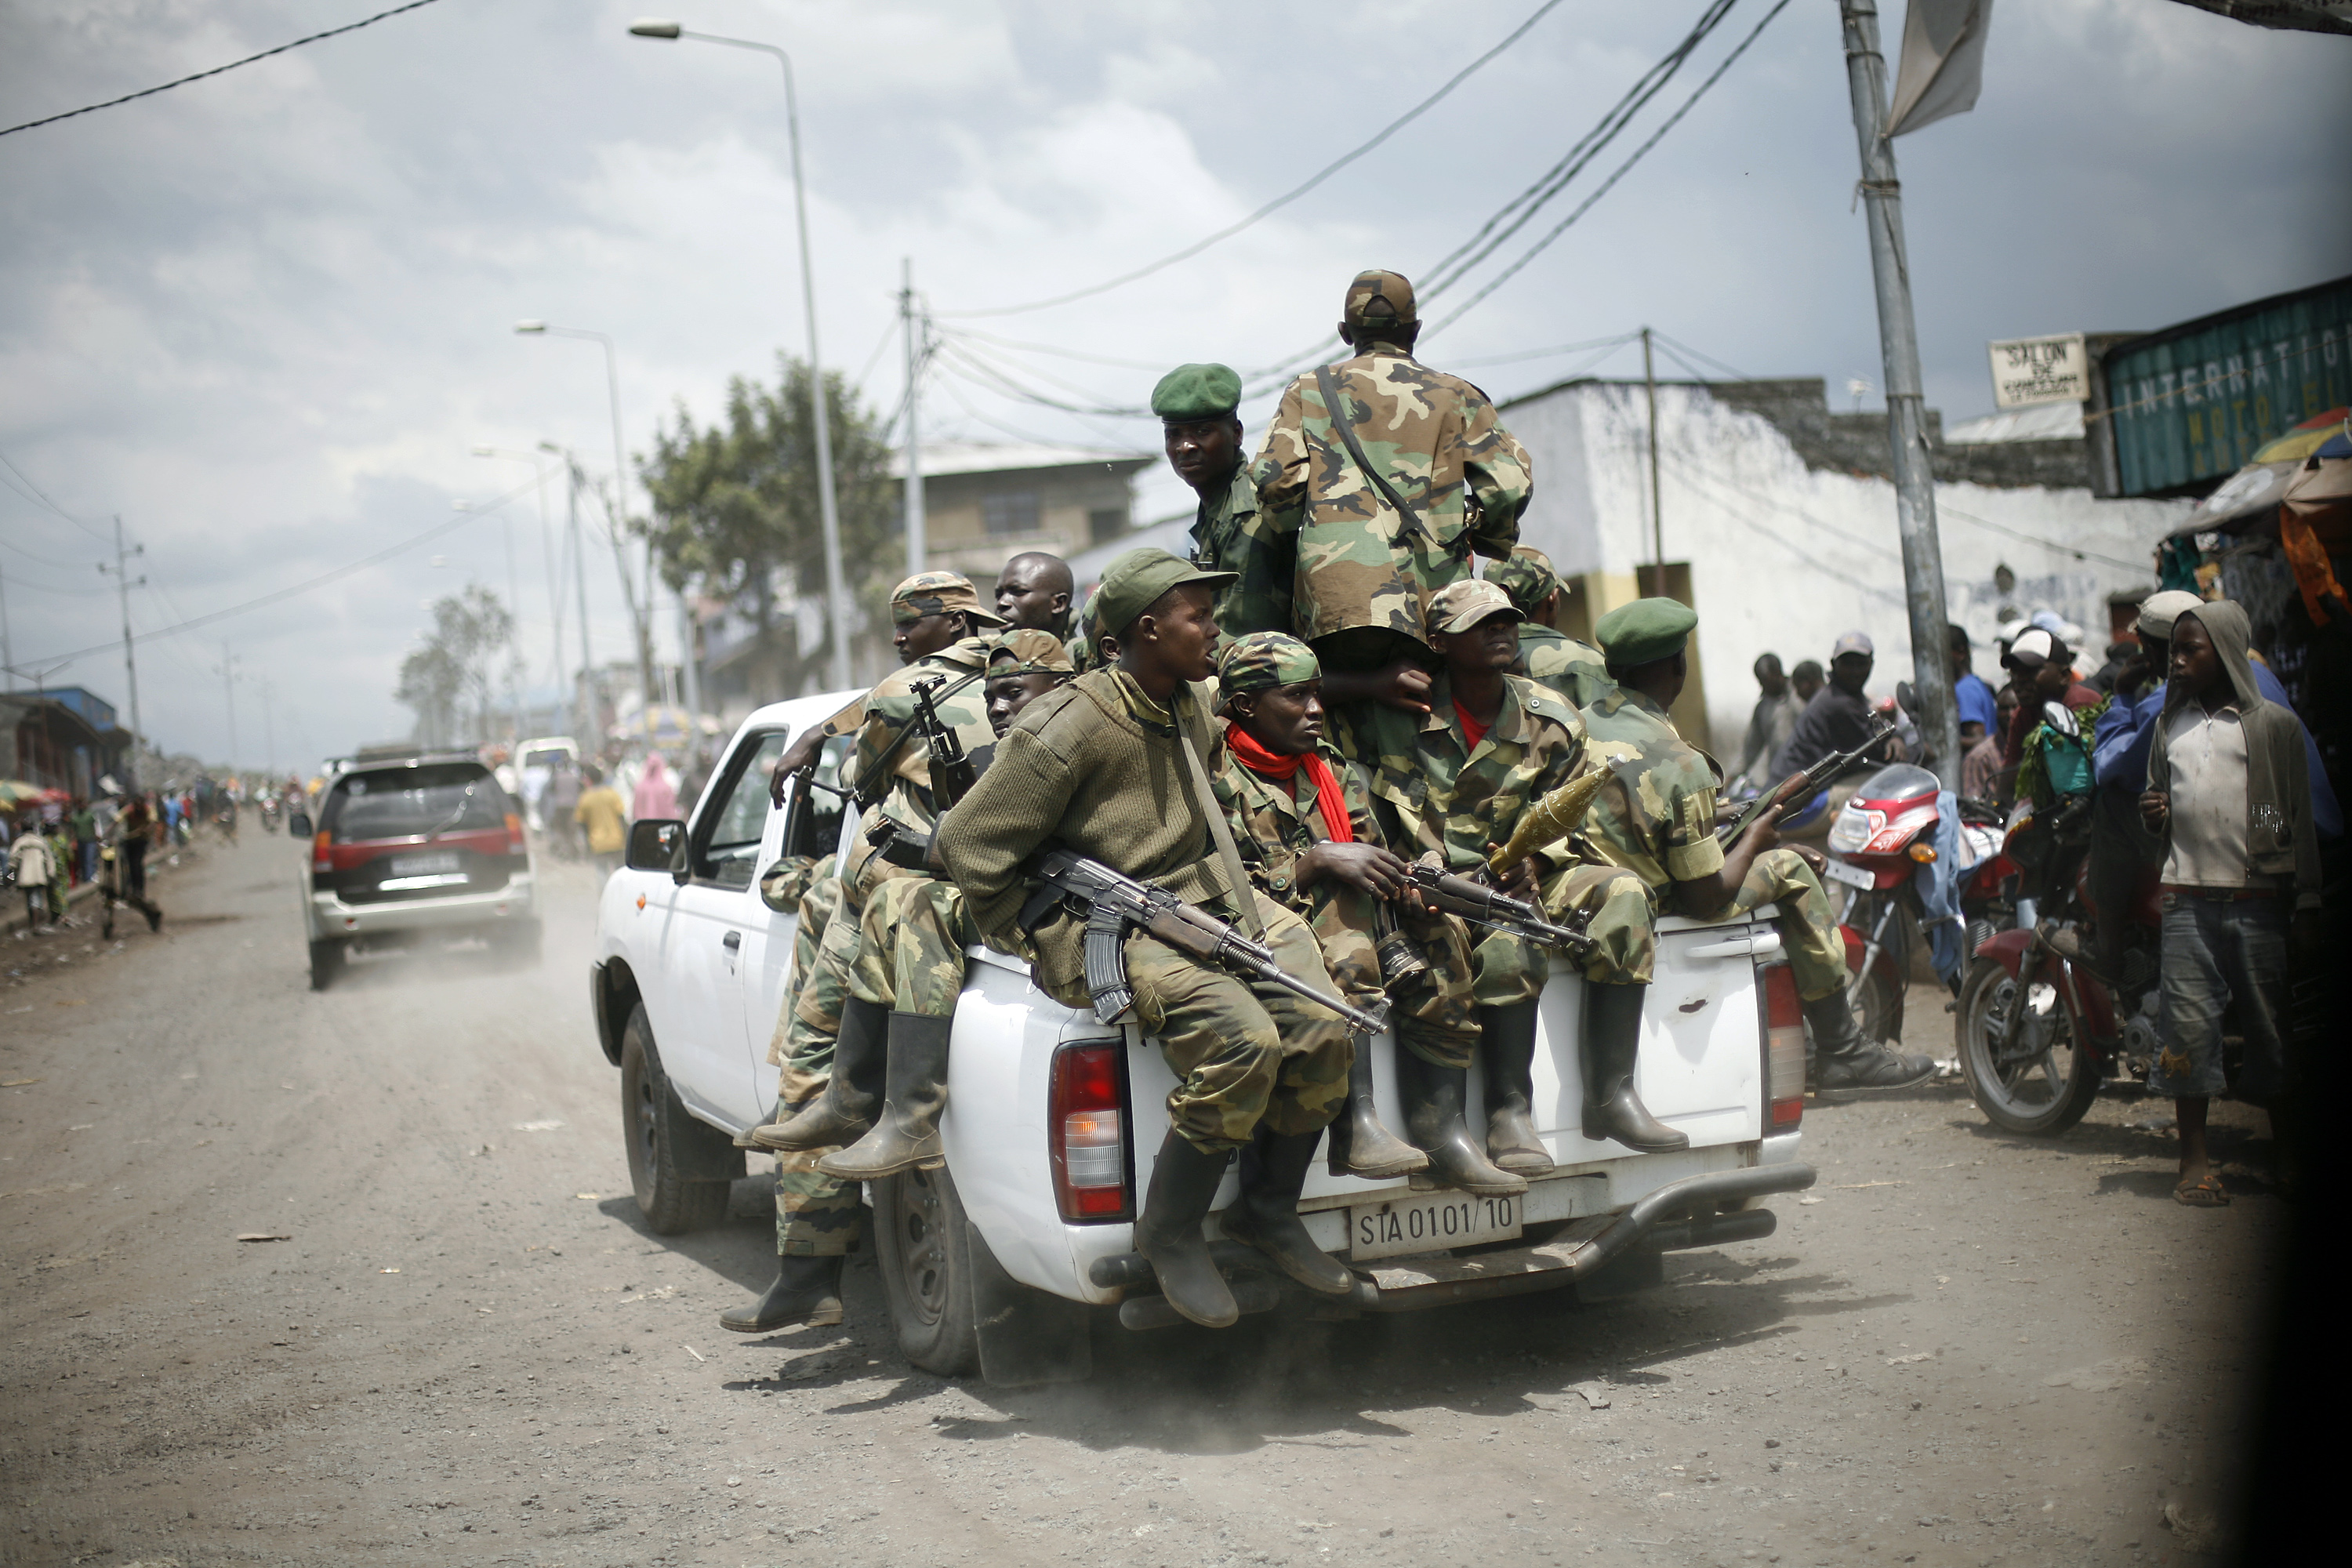 Policy Alert: Reintegrating Warlords into Congo's Army?